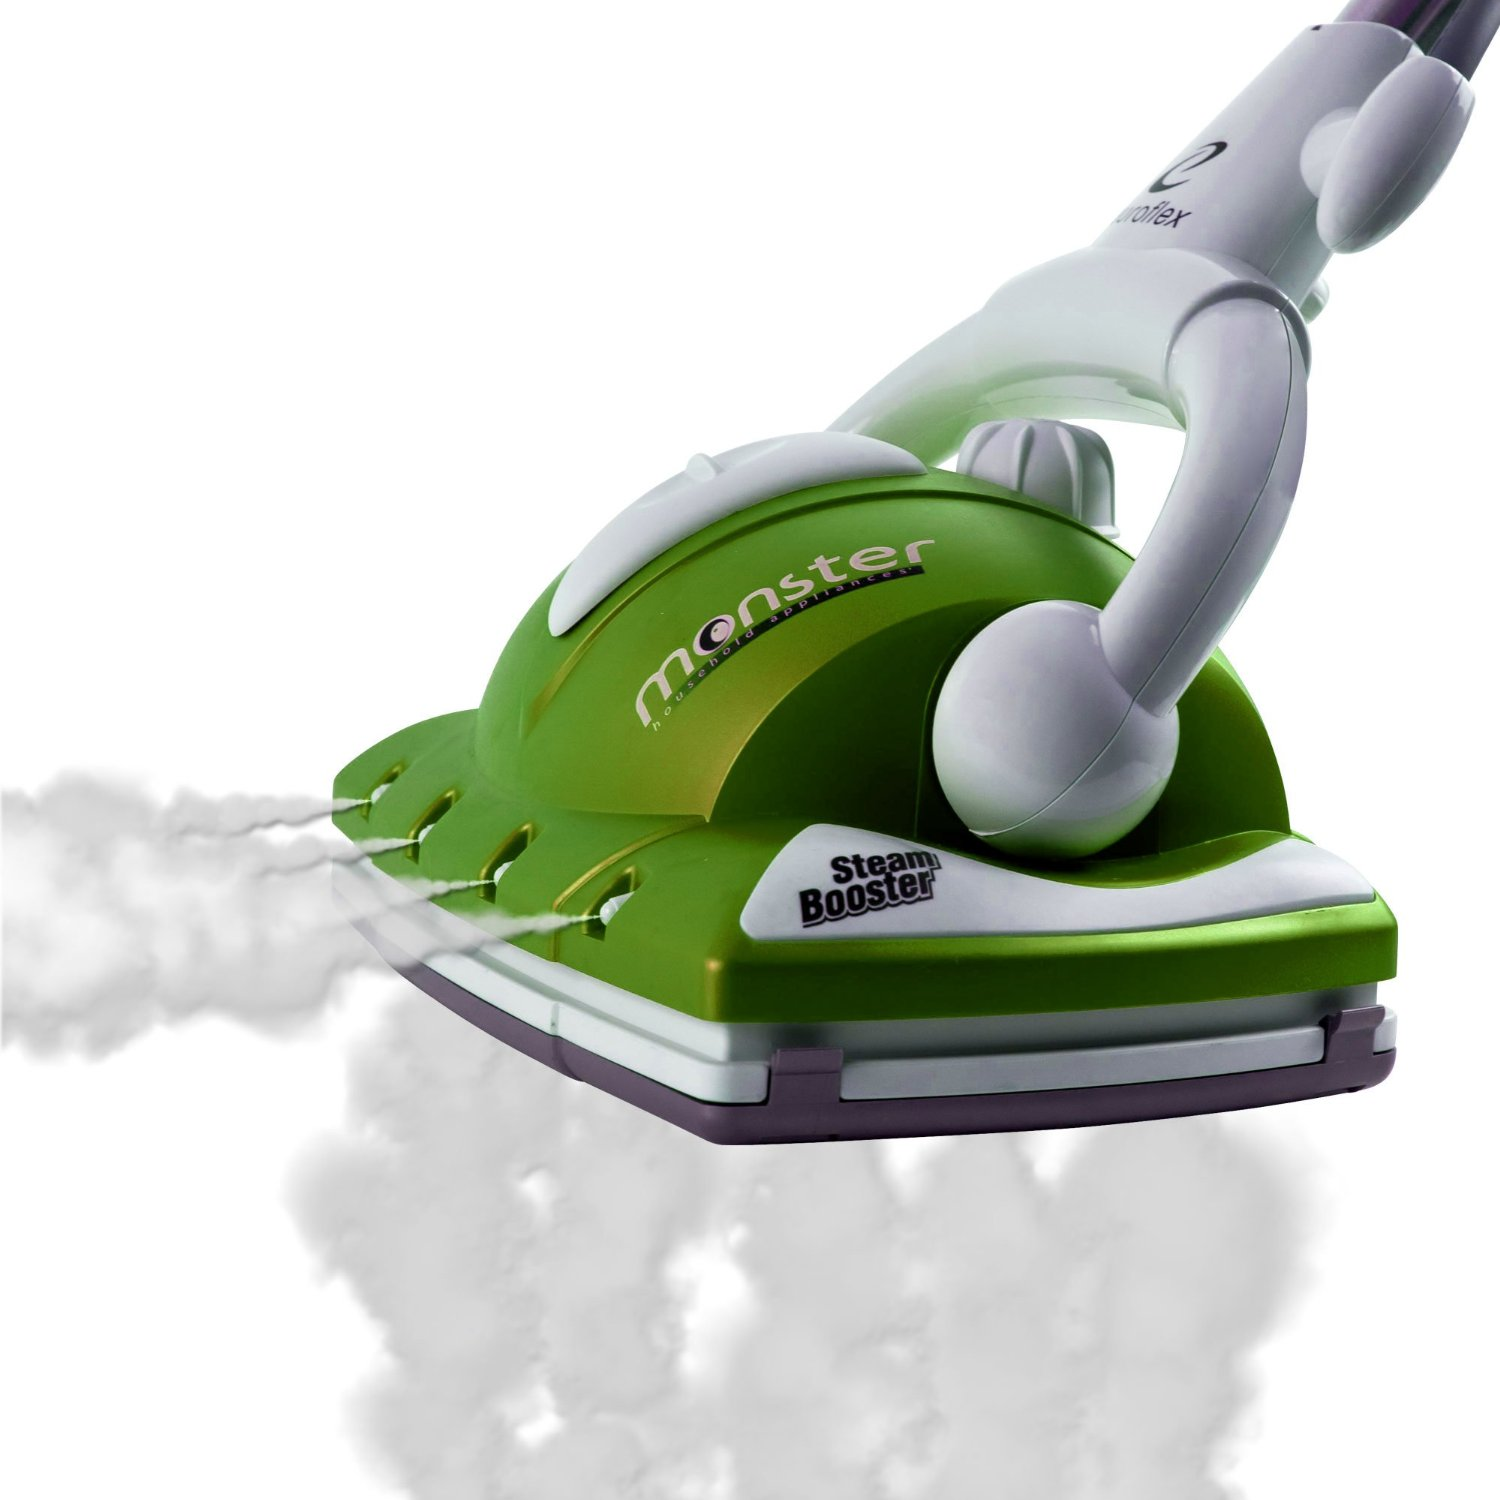 Euroflex Monster Steam Jet Ii 1200w Disinfecting Floor Cleaner Best  Disinfectant Mop - Best Wood Floor Steamer €� Gurus Floor